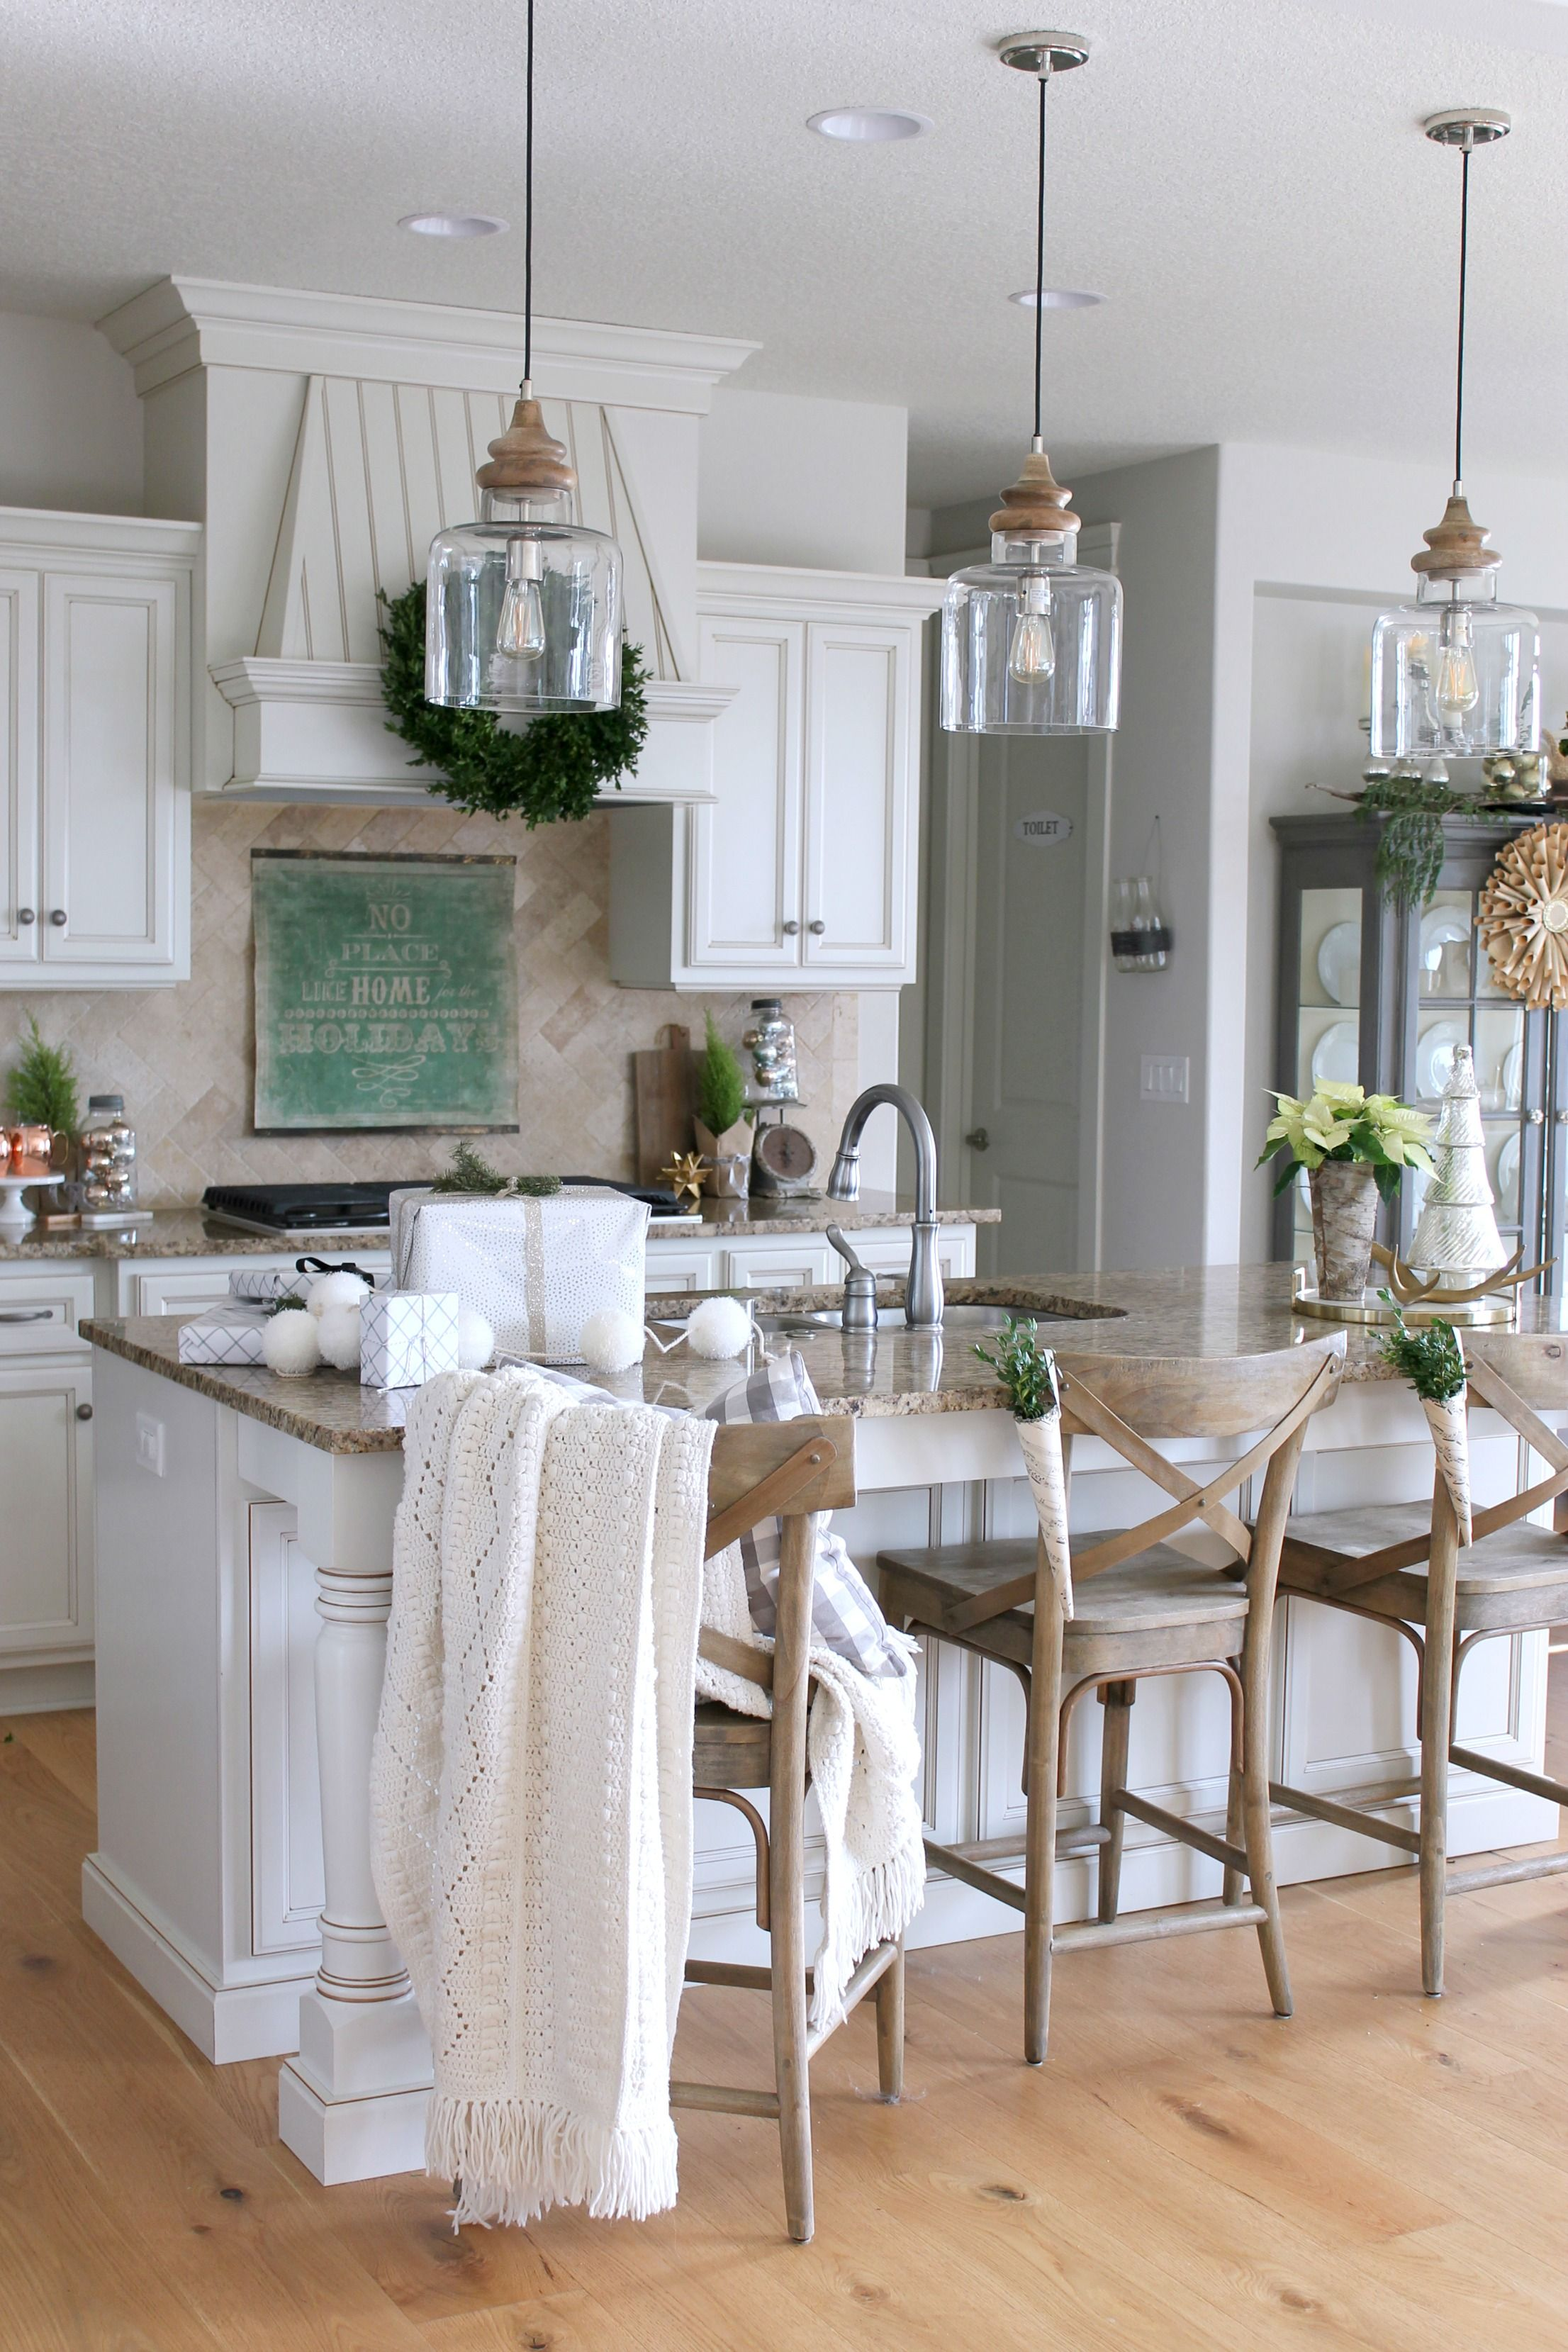 New Farmhouse Style Island Pendant Lights Kitchens